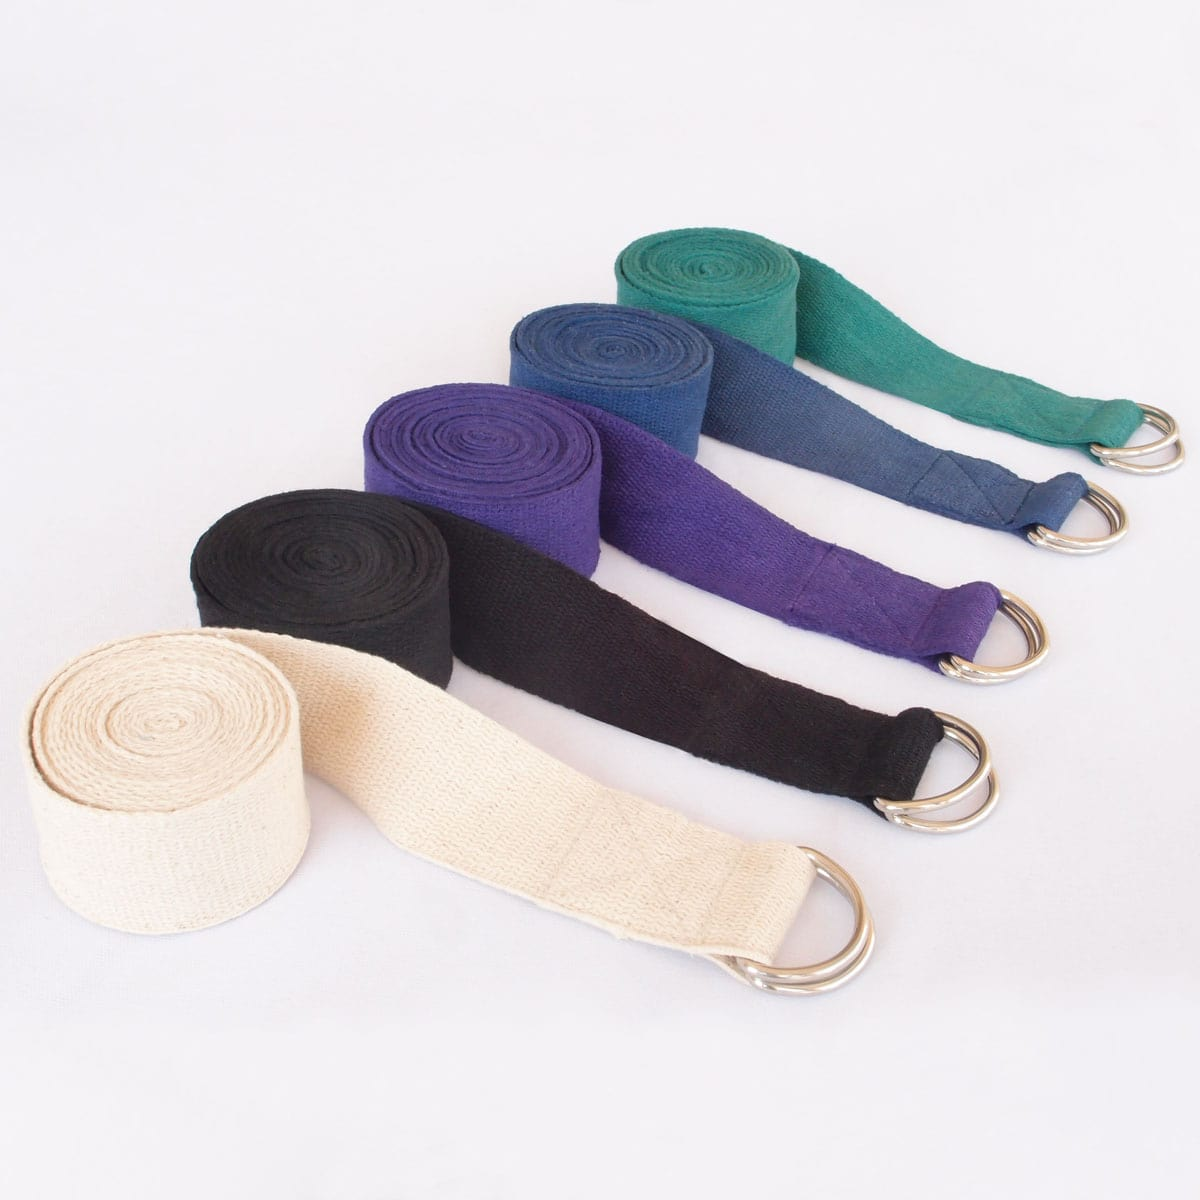 Buy Yoga Straps 6 And 8 Length 7 95 As Low As 4